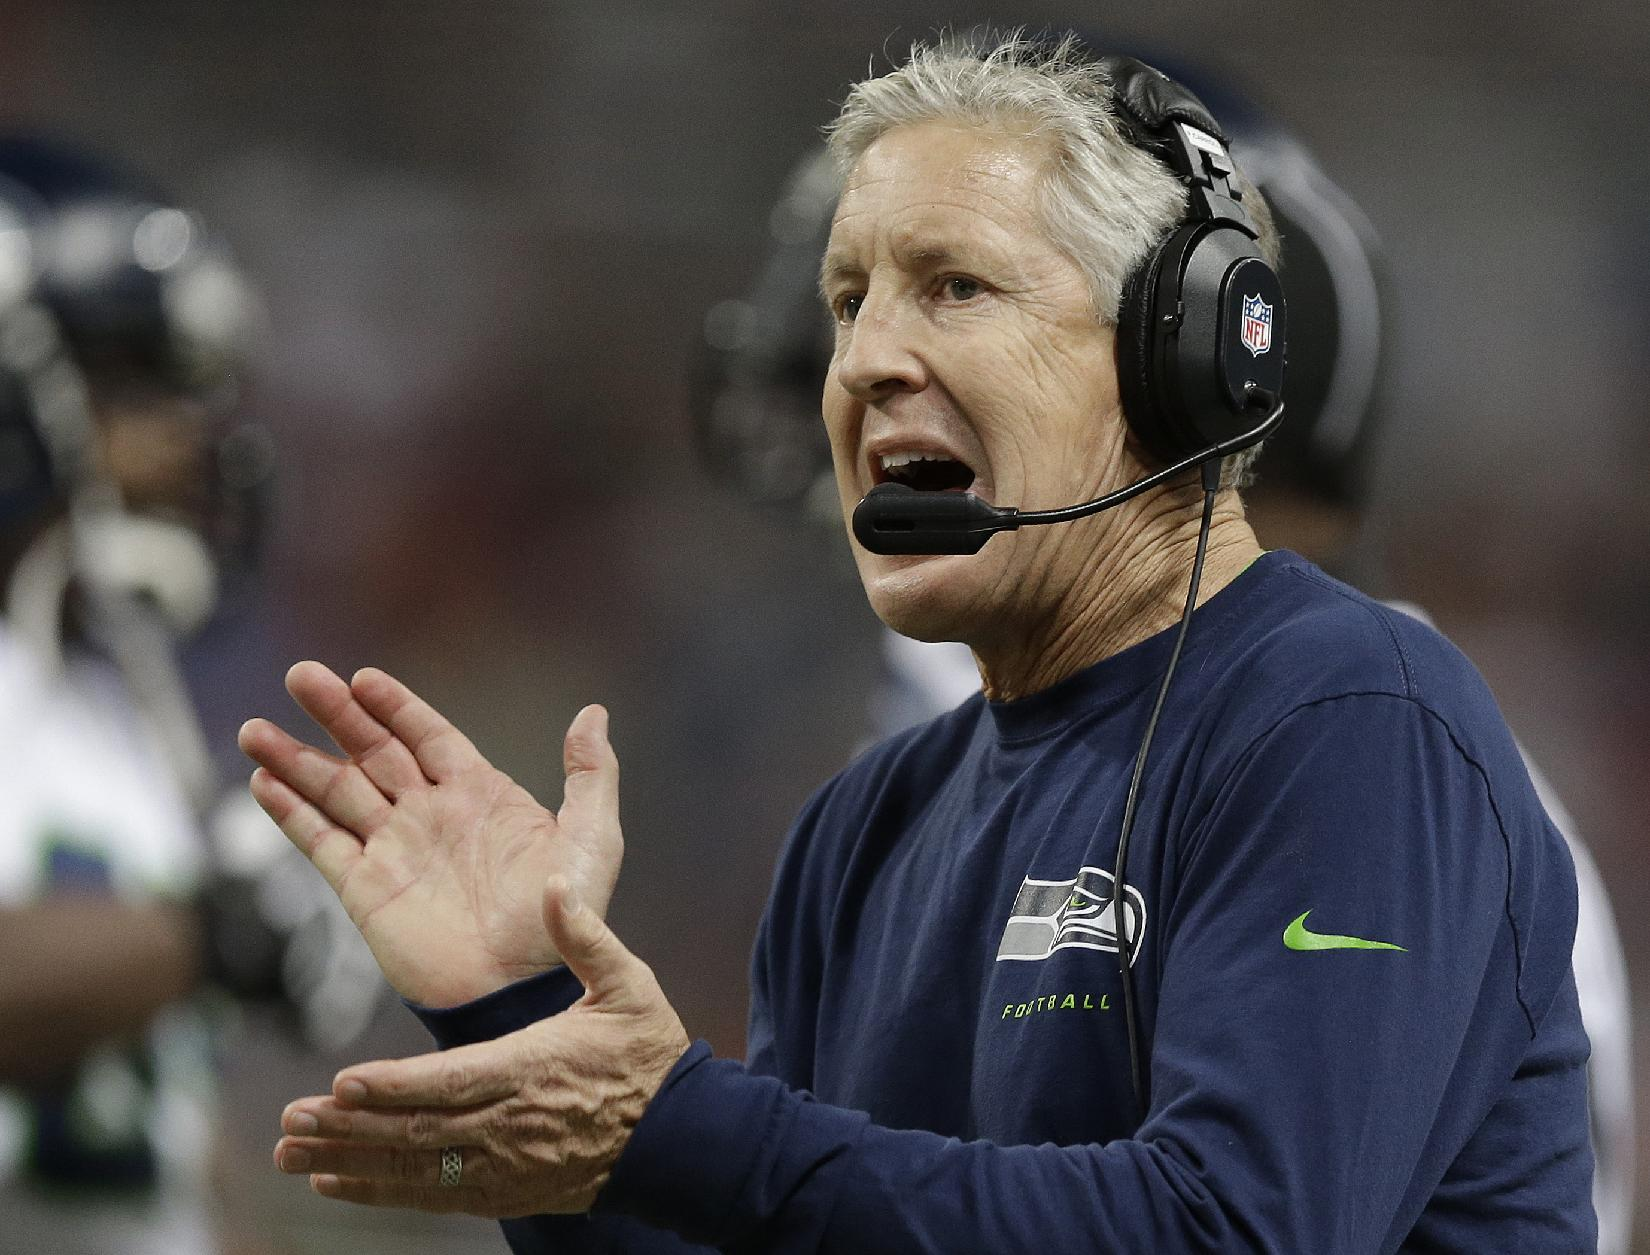 Seattle Seahawks head coach Pete Carroll works during the first half of an NFL football game against the St. Louis Rams, Monday, Oct. 28, 2013, in St. Louis